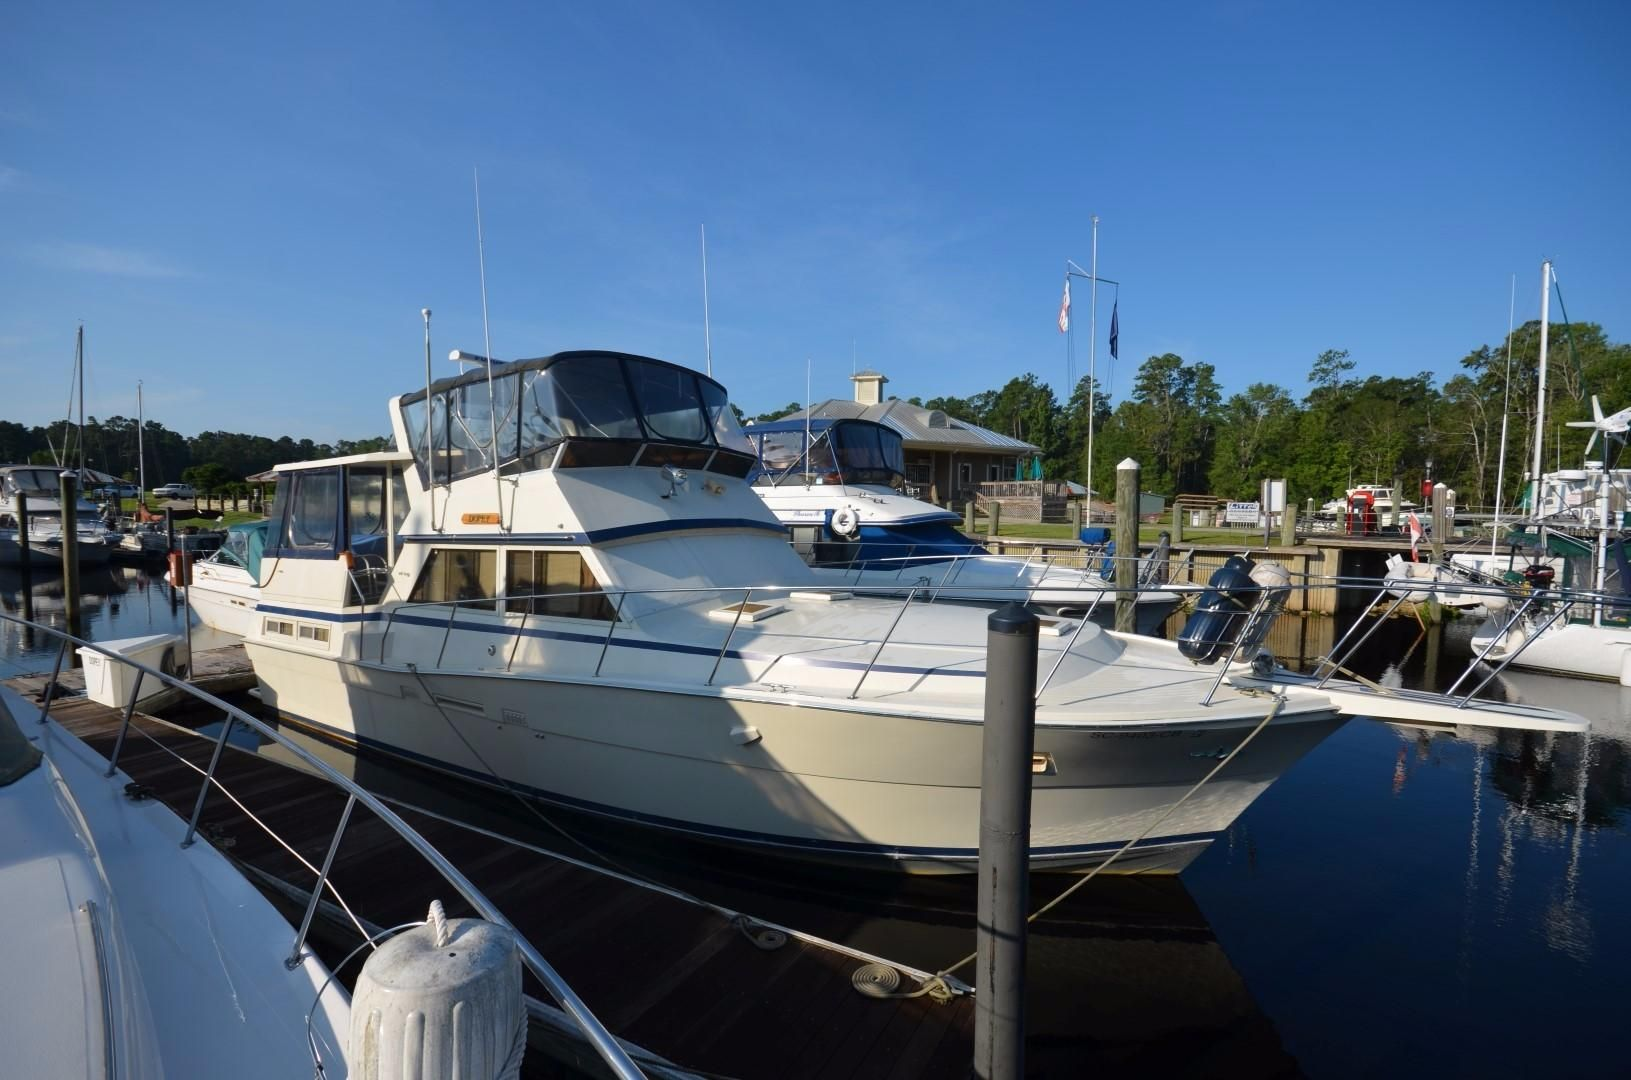 1983 Viking 44 Motoryacht Power Boat For Sale Www